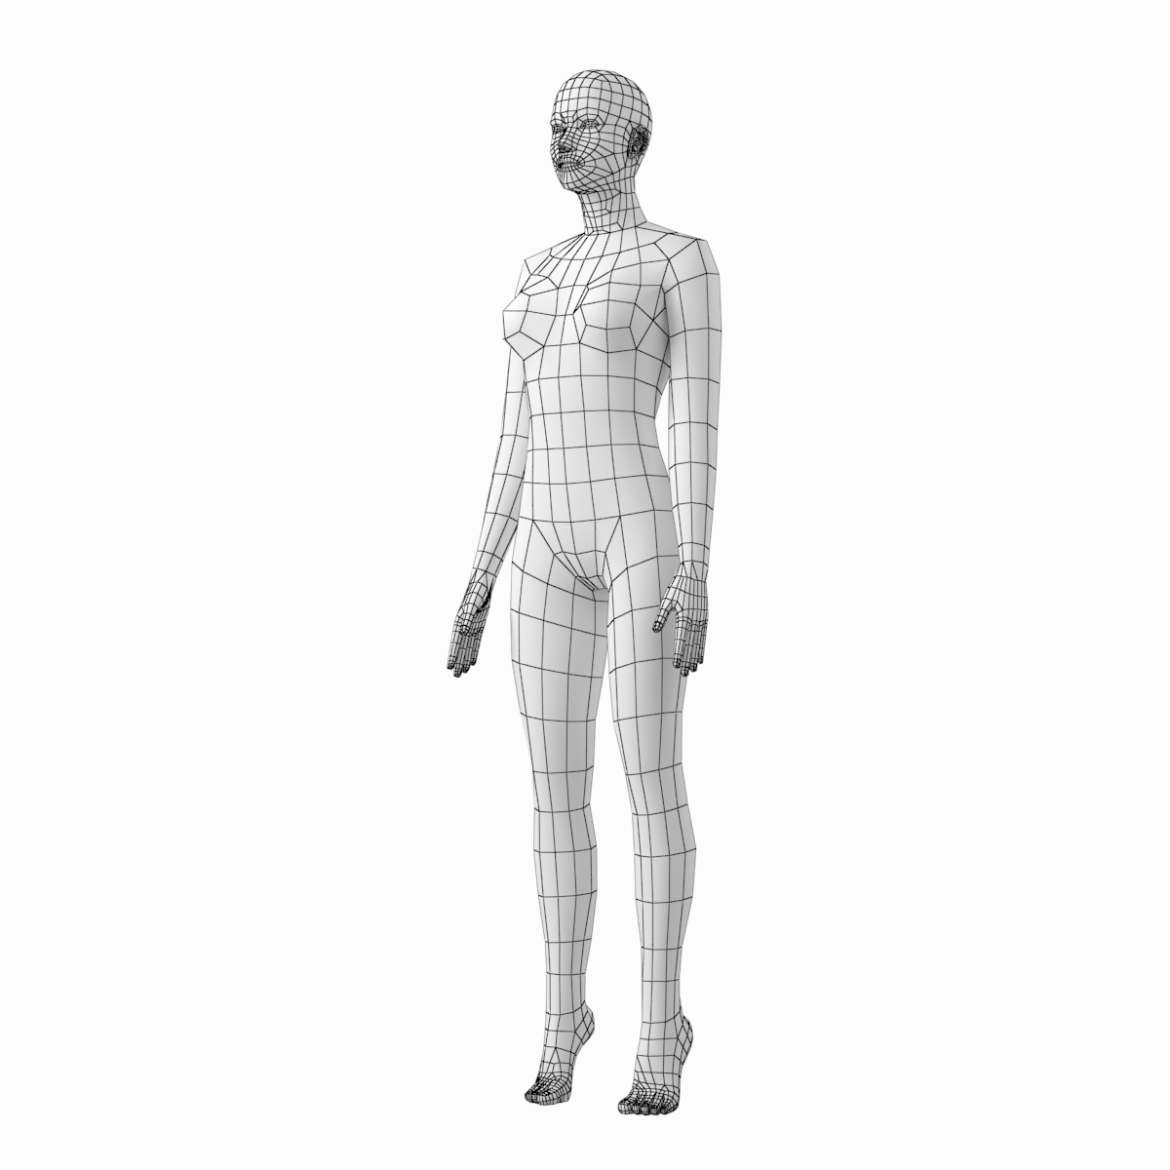 female and male base mesh in rest pose 3d model png c4d dae dwg dxf fbx max ma mb obj stl txt 305807